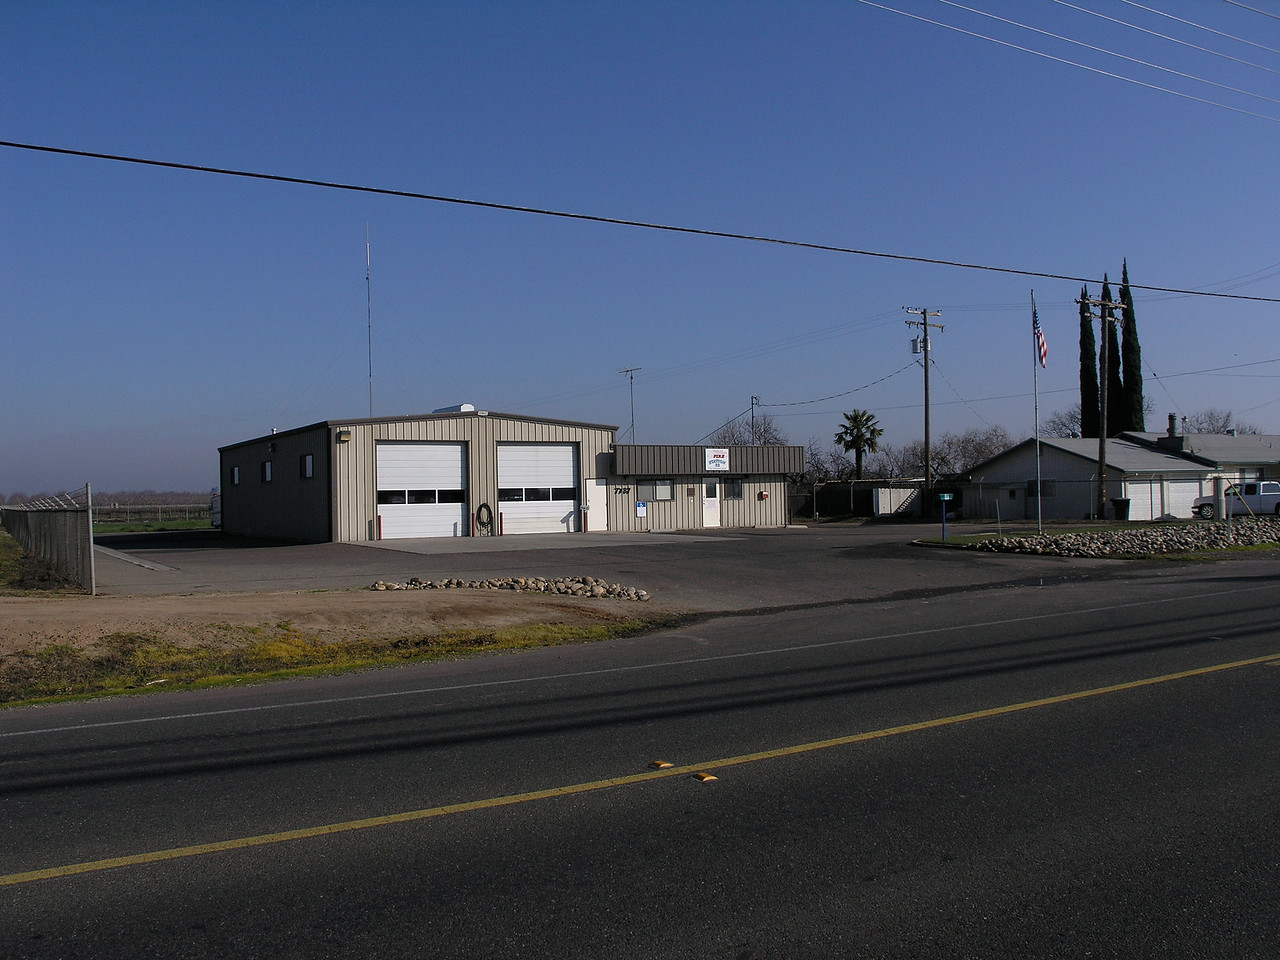 A rural fire station East of Modesto at the intersection of Yosemite Blvd and Albers road.